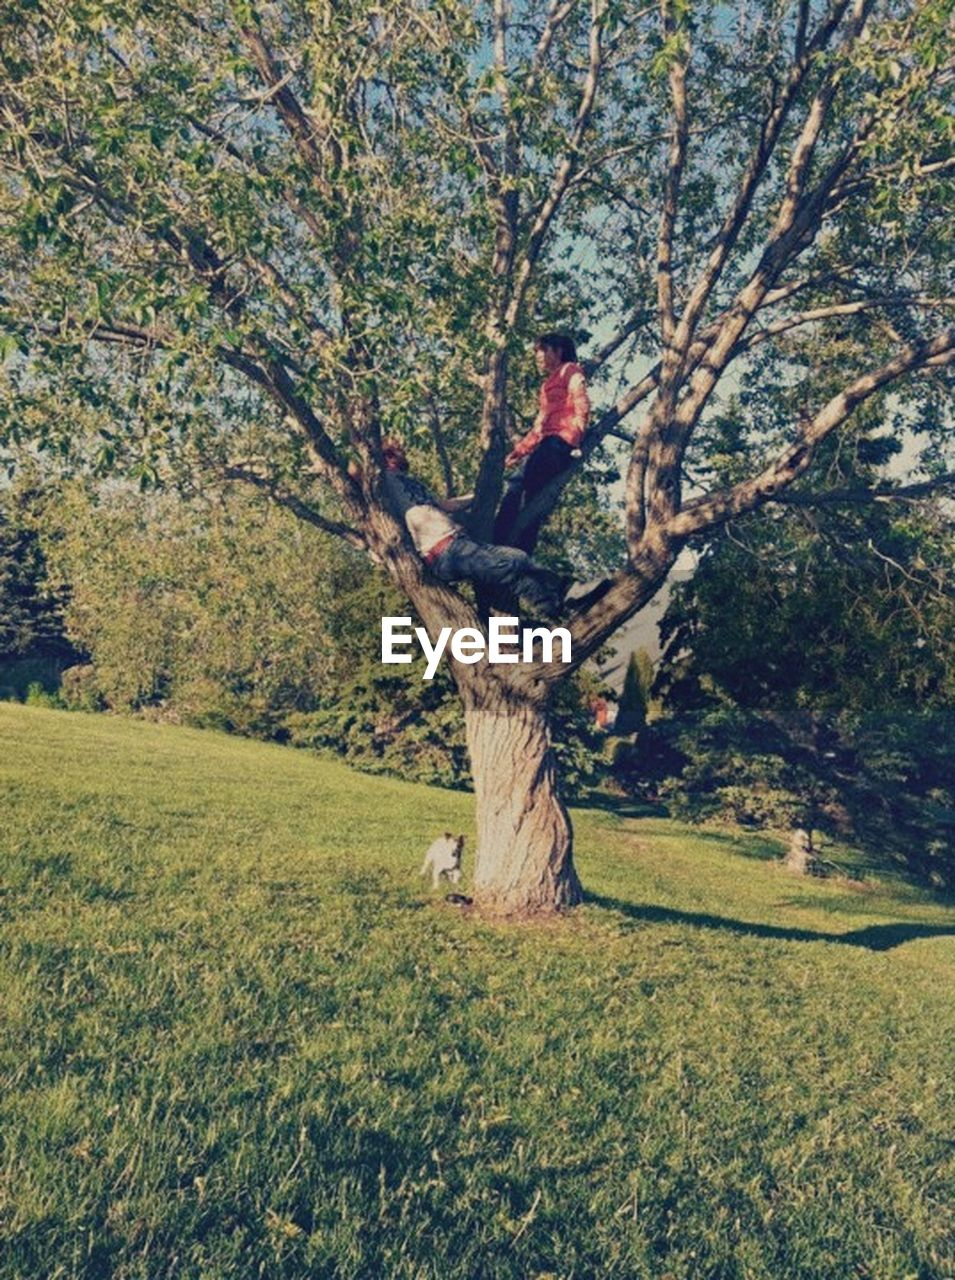 tree, one person, tree trunk, nature, full length, day, grass, outdoors, adults only, one woman only, branch, only women, adult, people, young adult